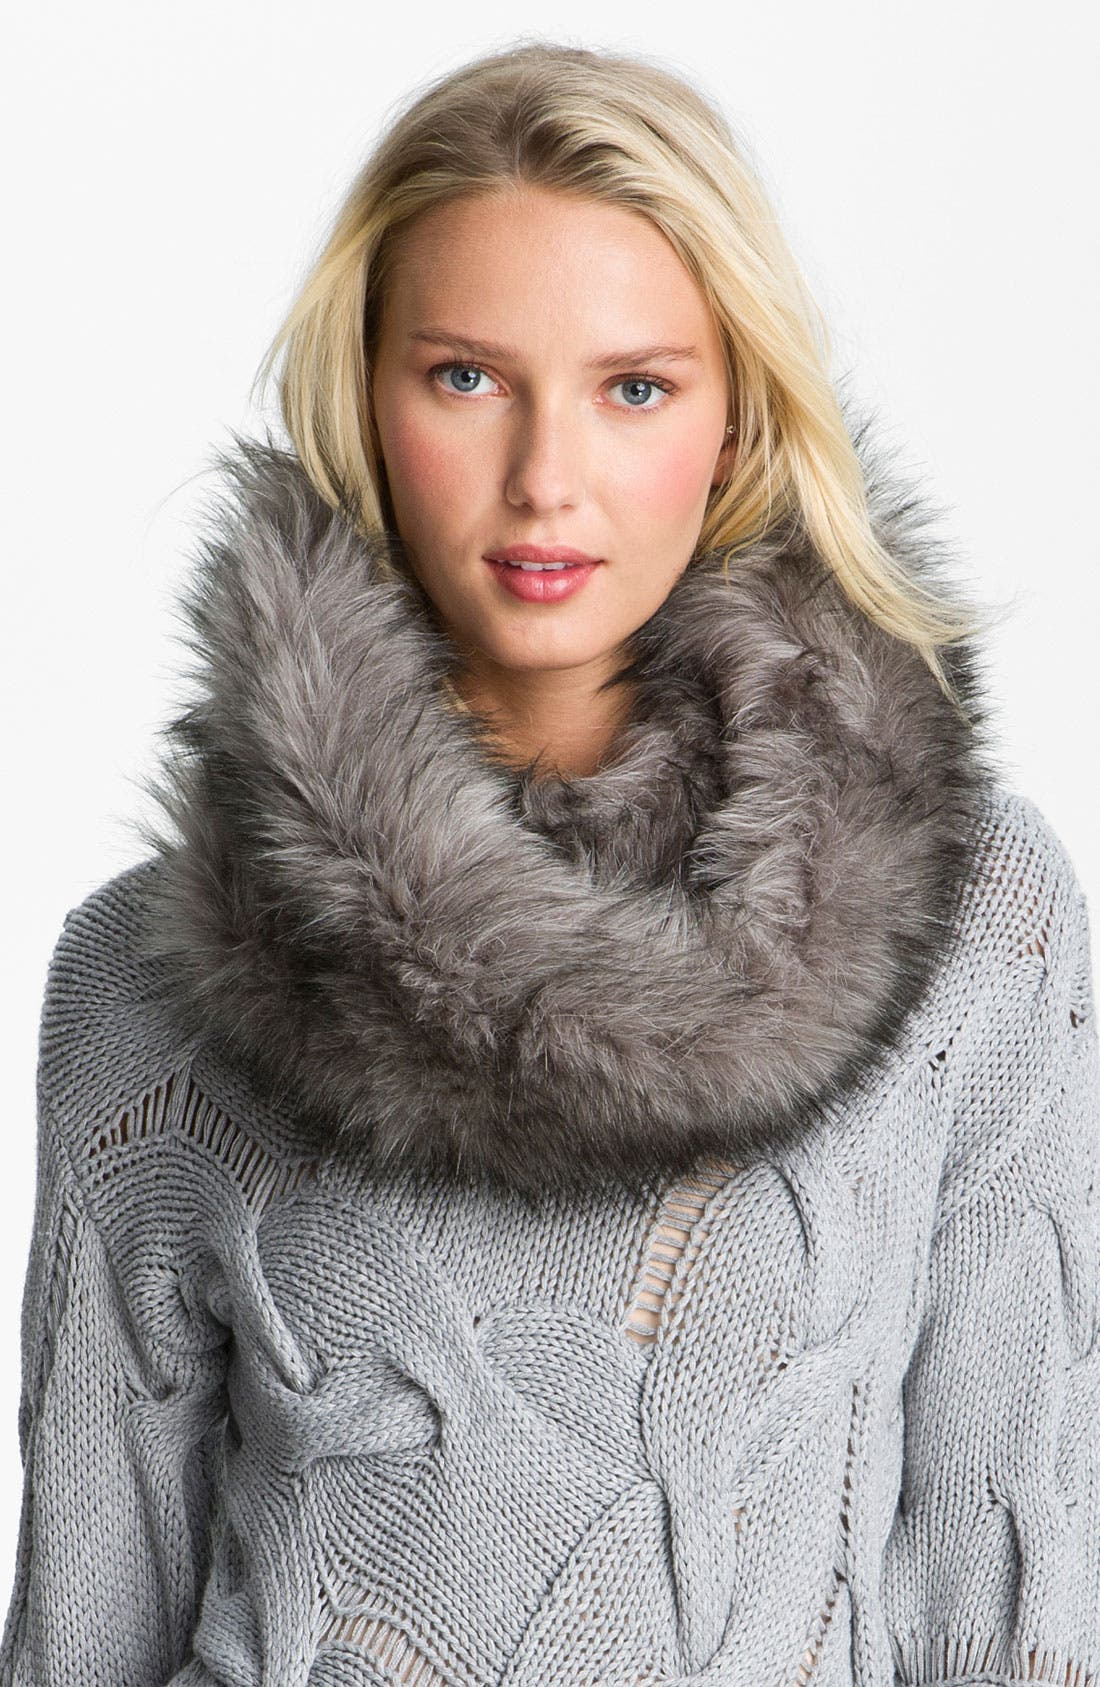 MICHAEL MICHAEL KORS,                             Faux Fur Neck Warmer,                             Main thumbnail 1, color,                             020